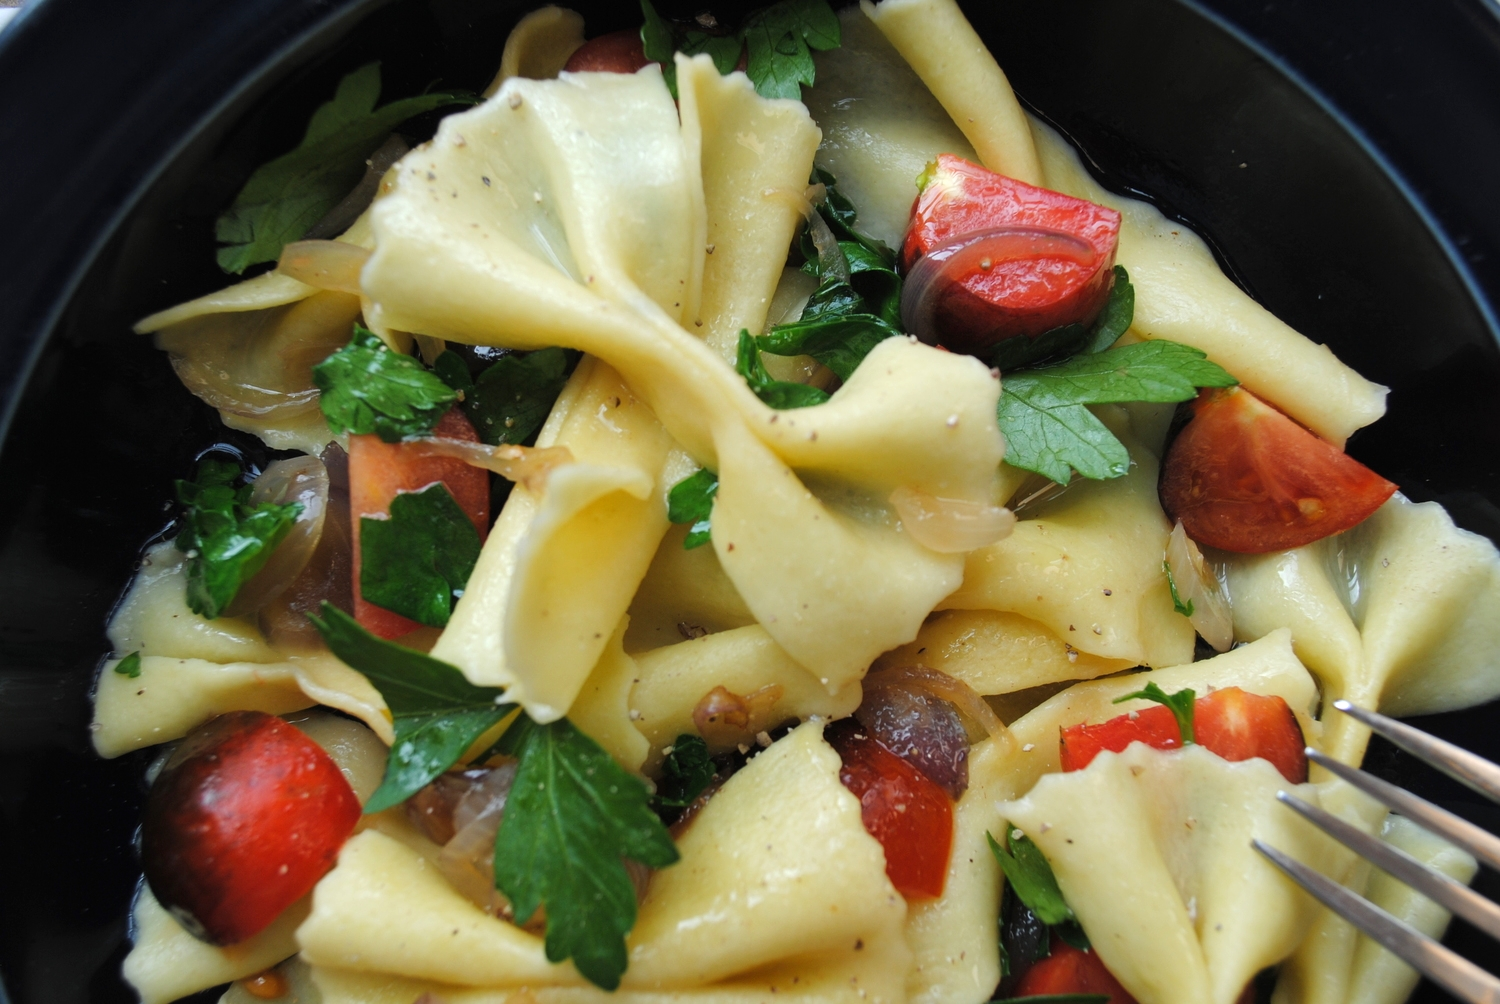 Farfalle with black prince tomato, parsley, shallots, black pepper